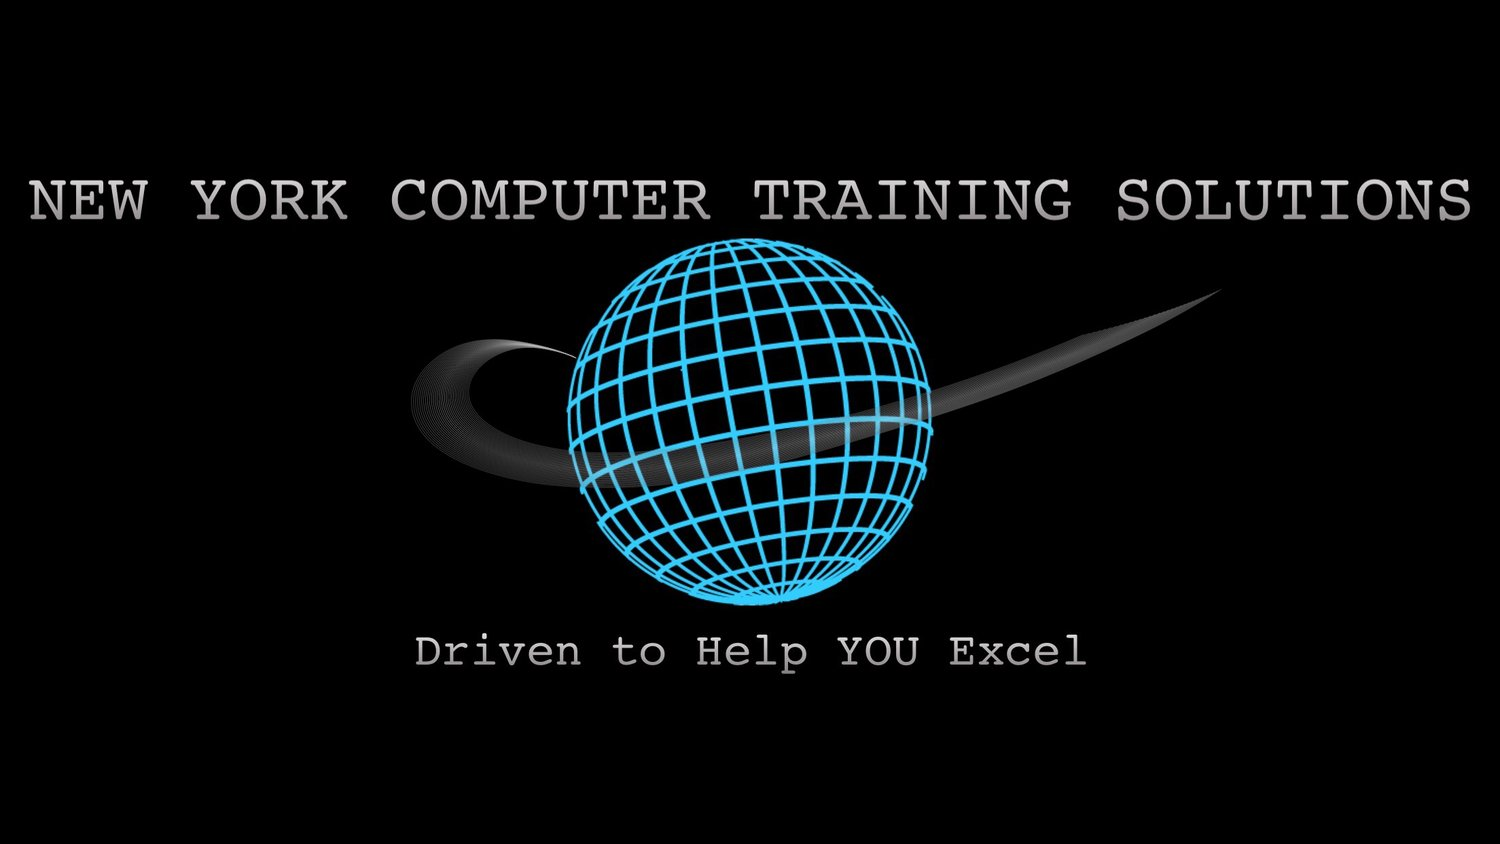 New York Computer Training Solutions